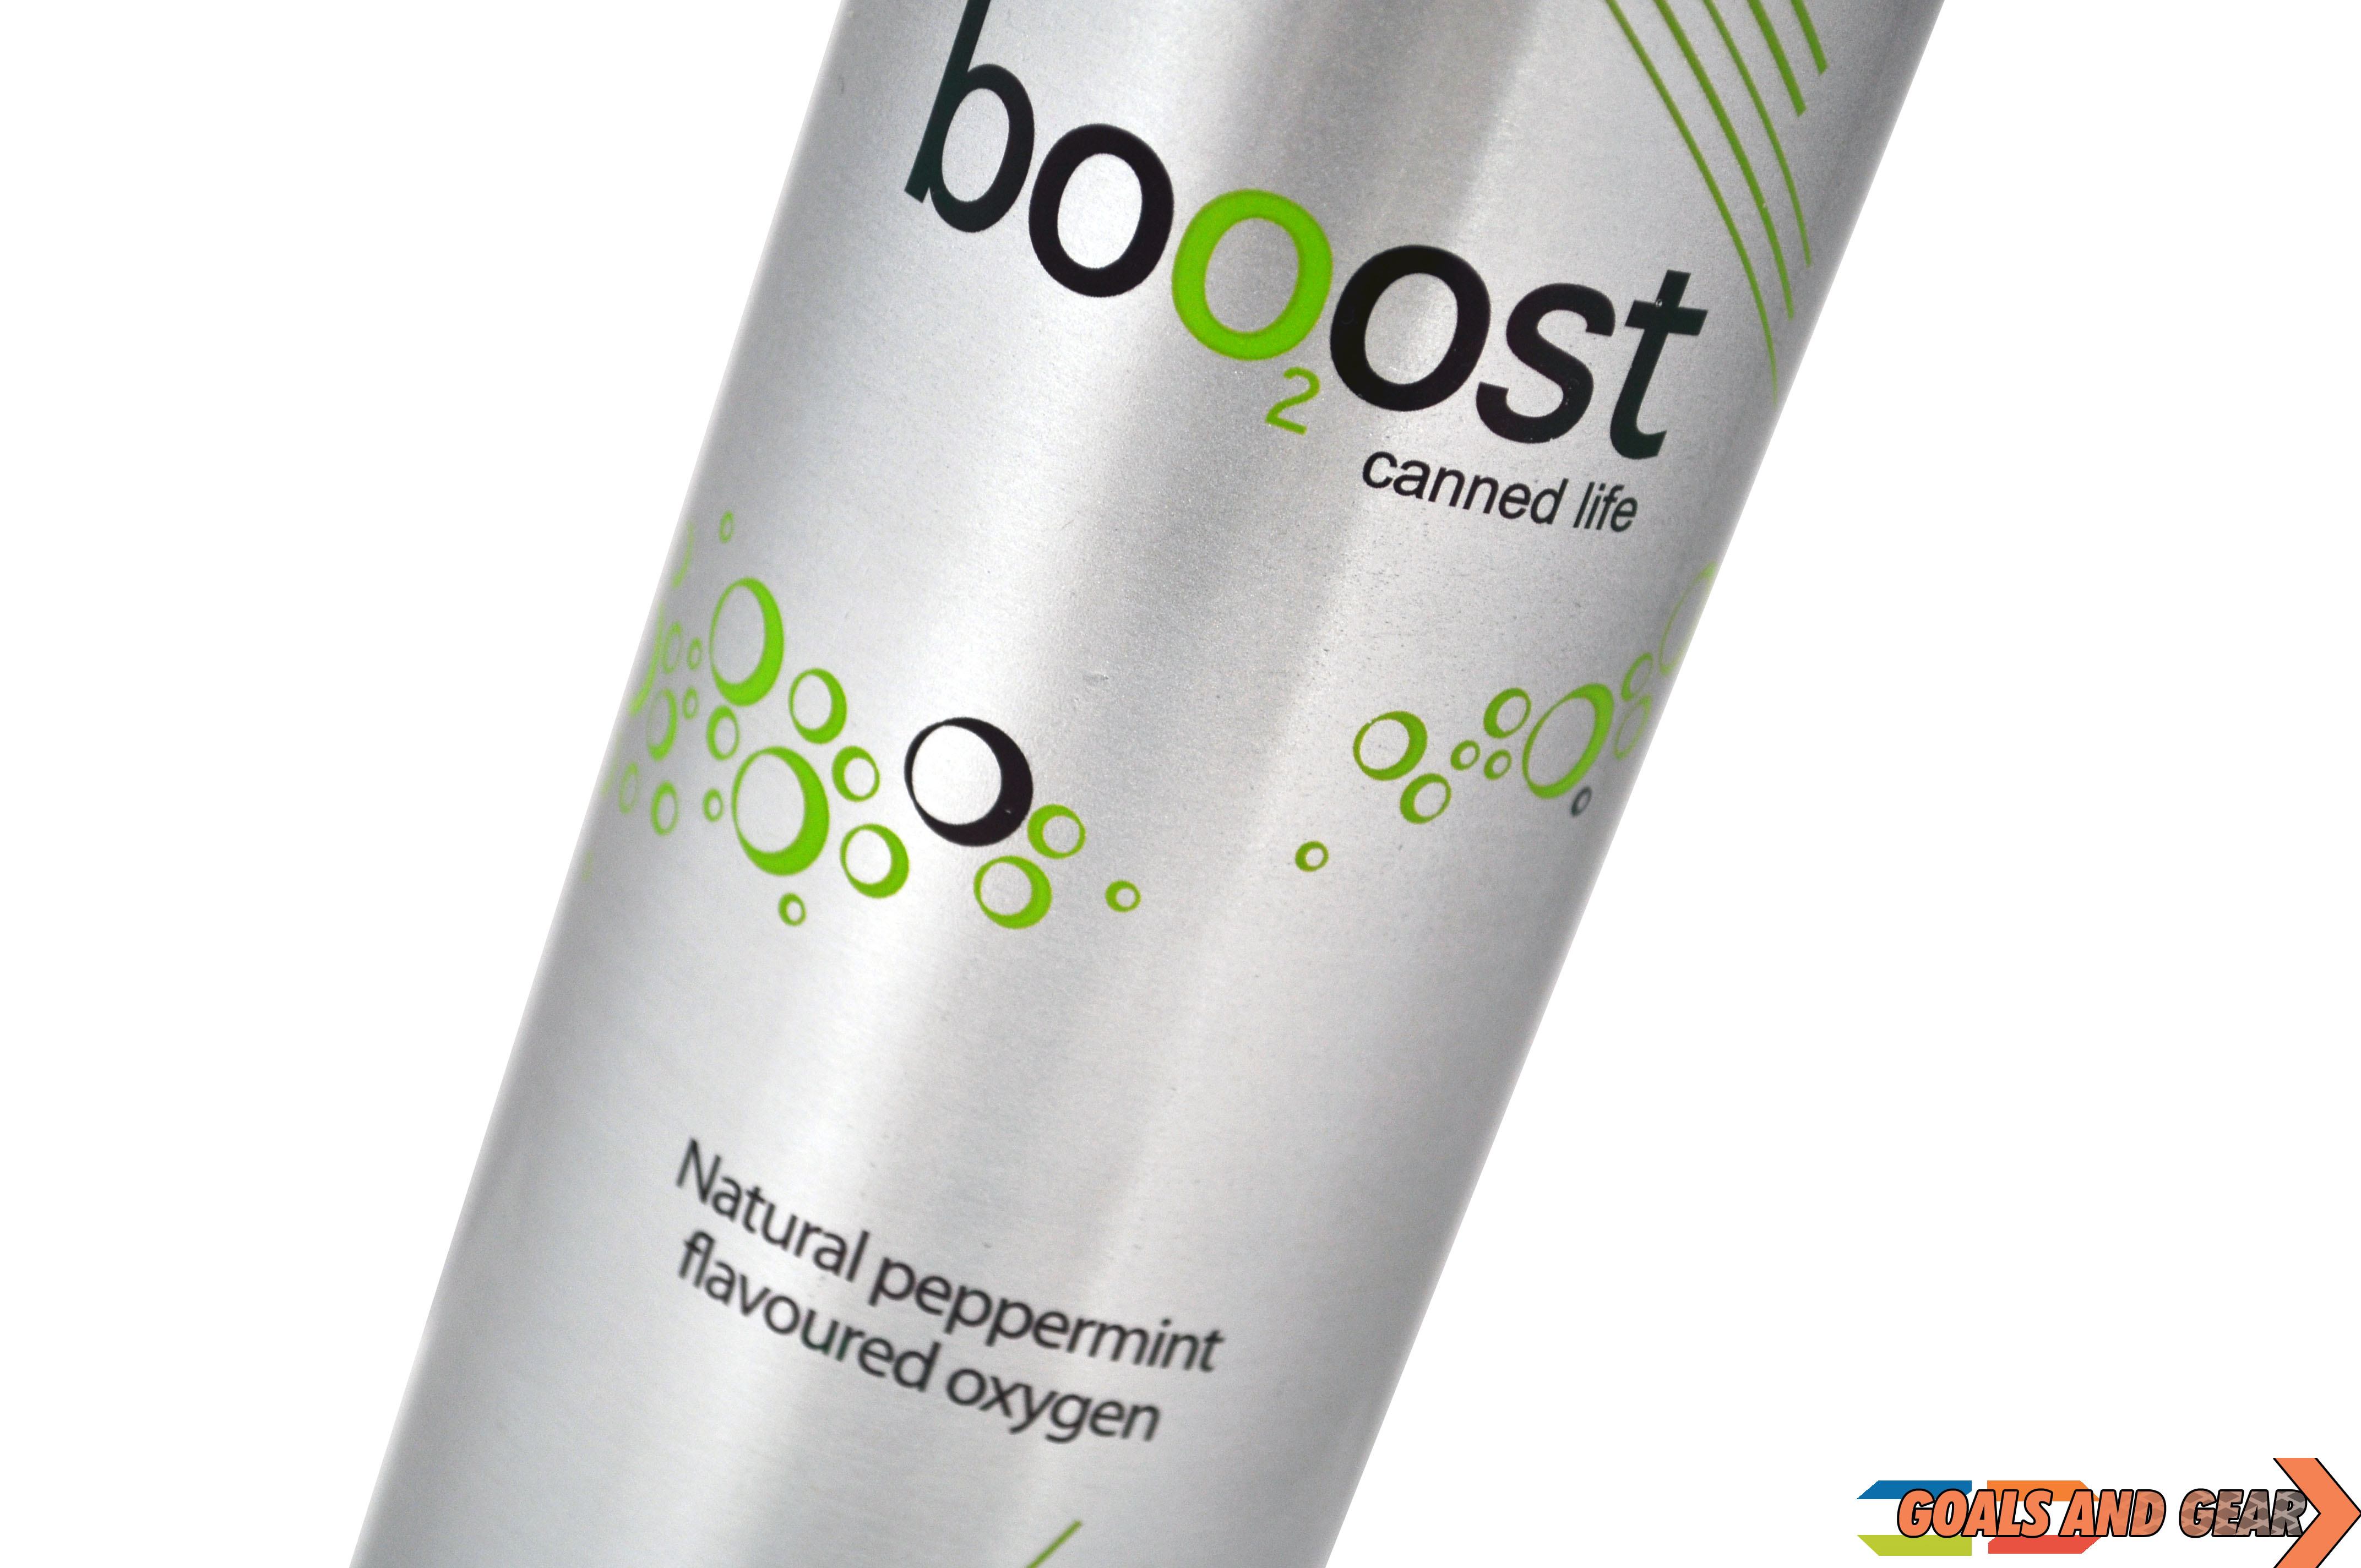 booost oxygen can tilted